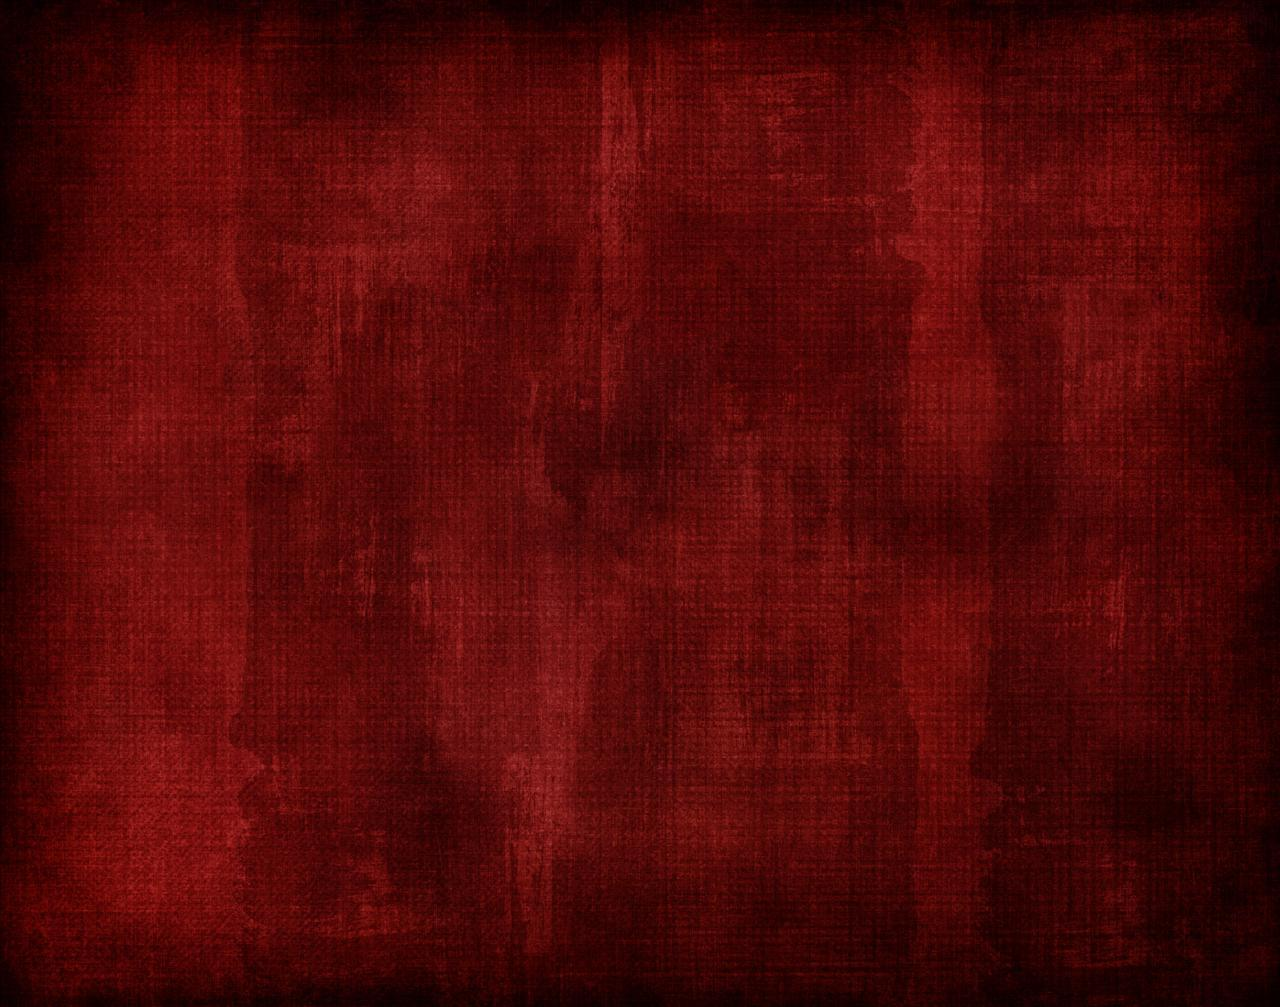 Dark Red Backgrounds - Wallpaper Cave